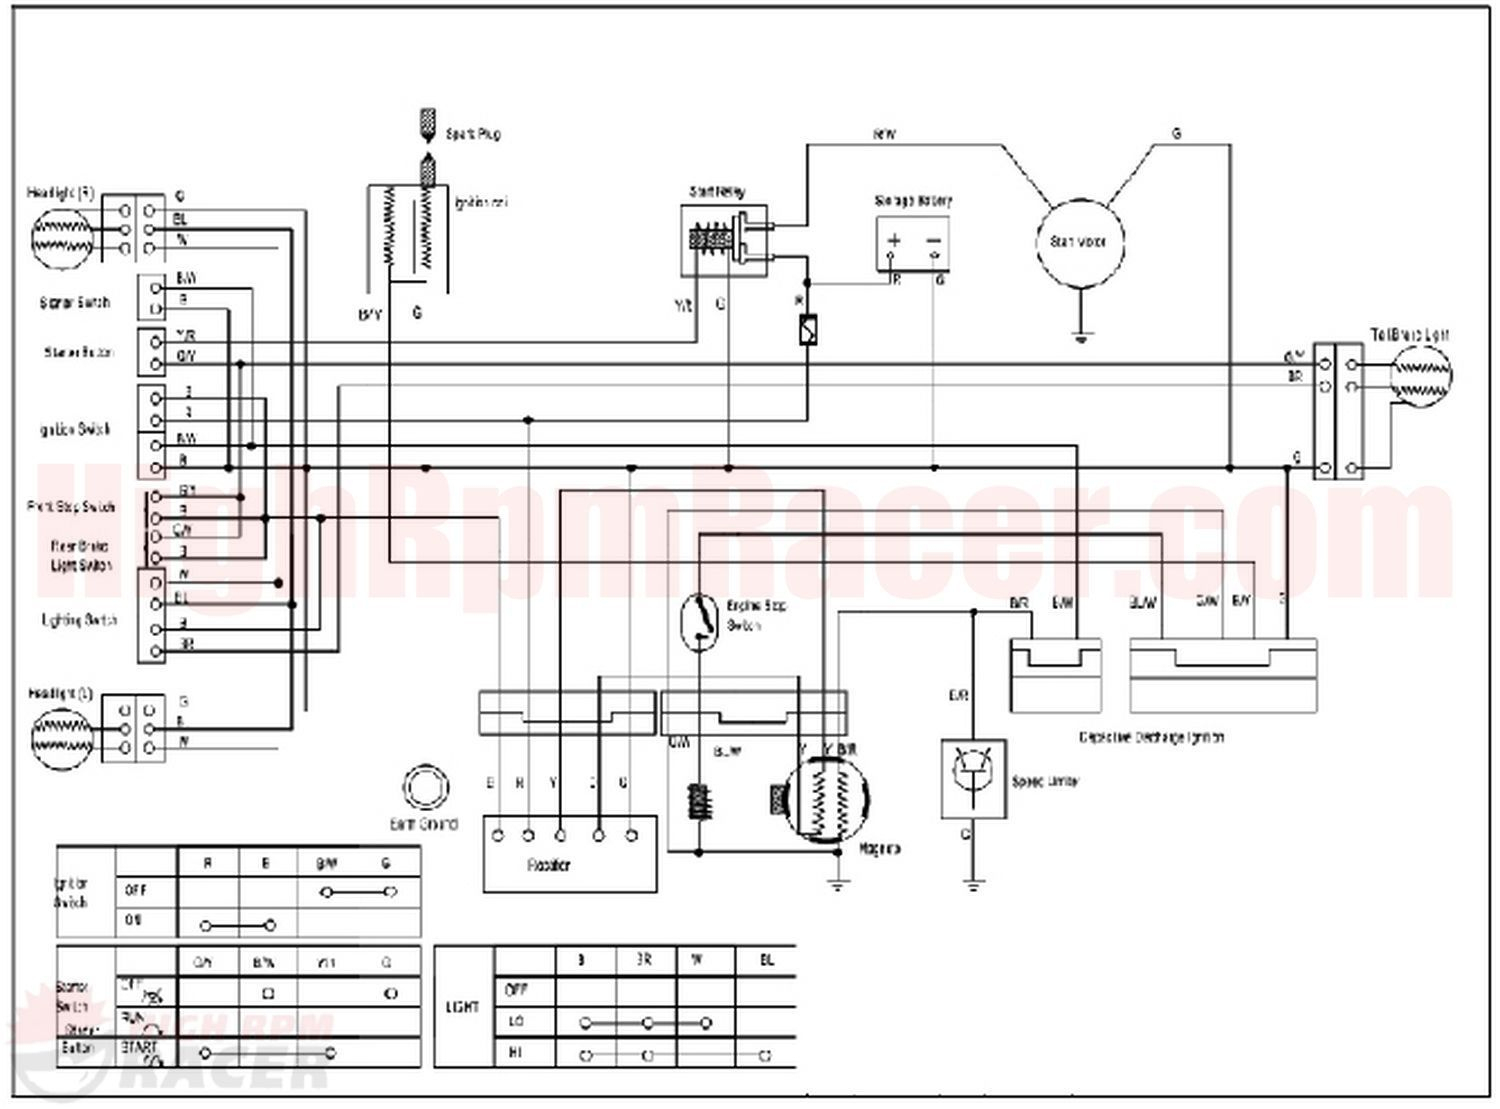 110 Atv Wiring Diagram - Wiring Diagram Data - Tao Tao 110 Atv Wiring Diagram